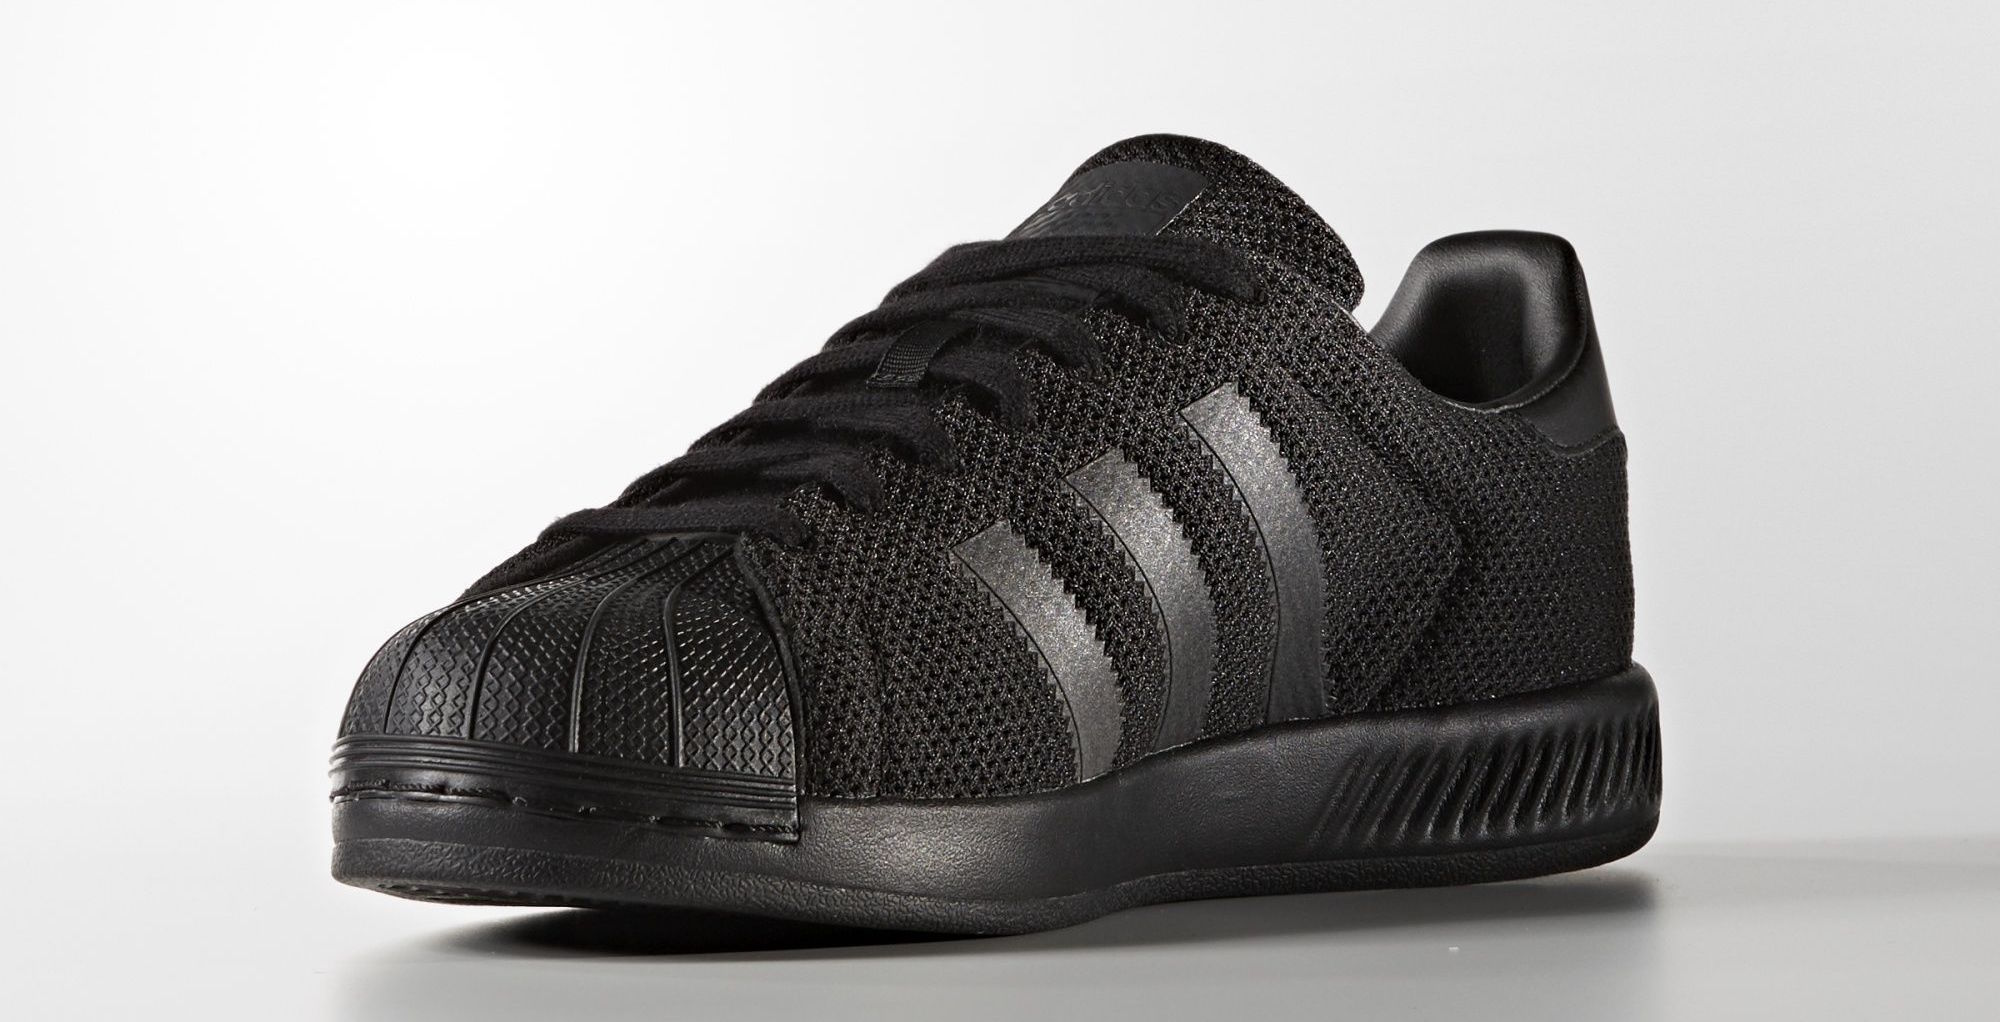 Wonderful Superstar Boost SNS Cblack for Sale, Get Superstar | Kyle's